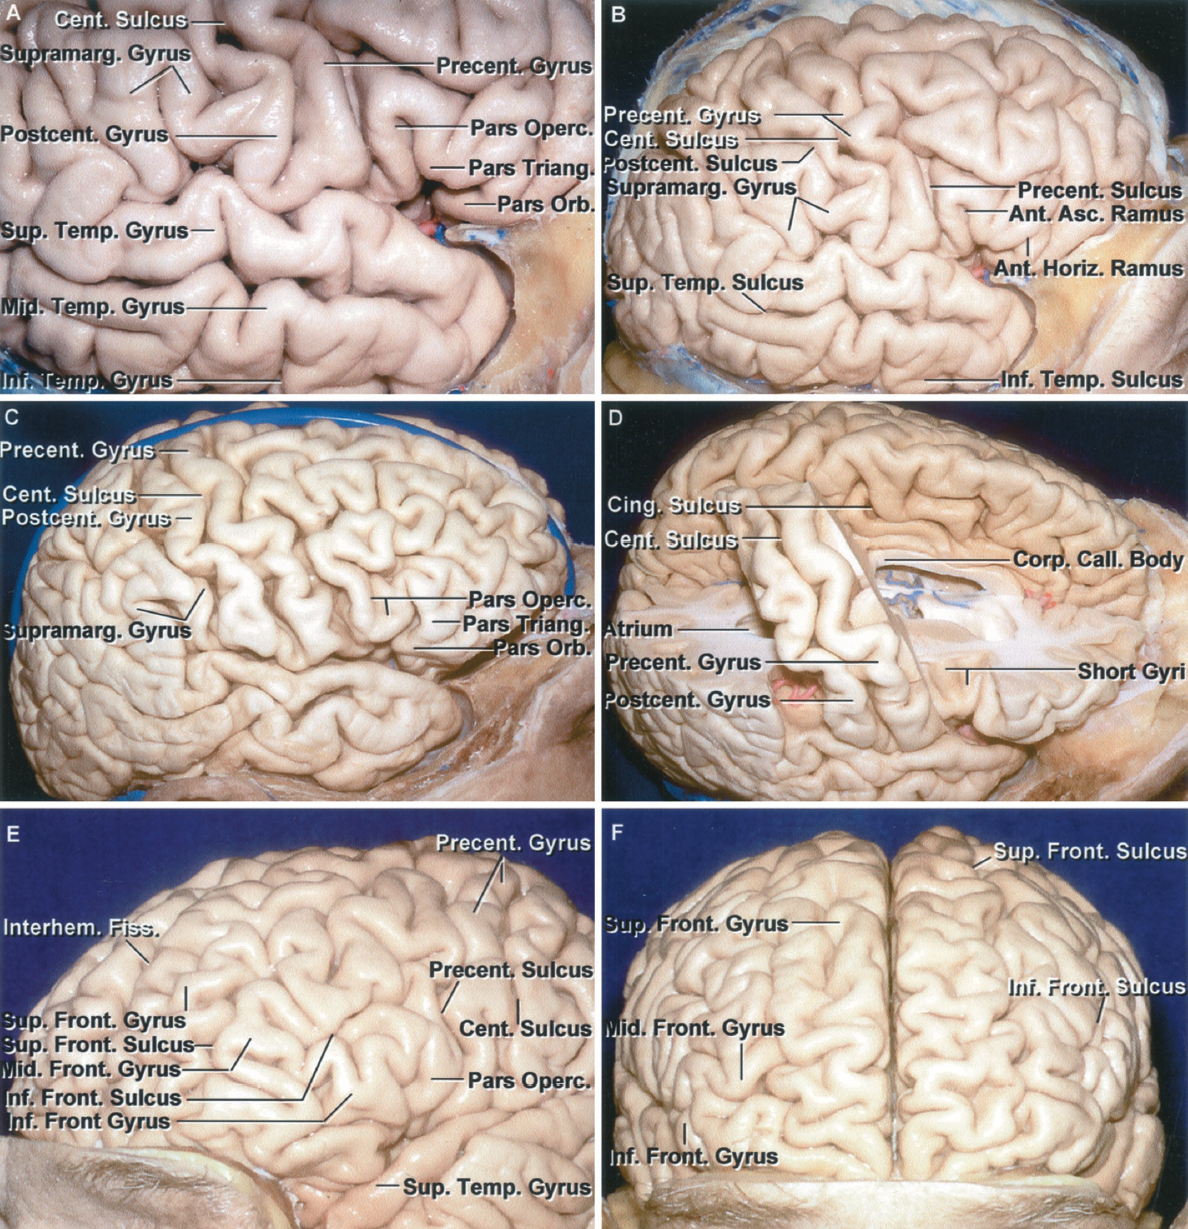 Figure 1.6 A-F. Identification of the pre- and postcentral gyri and variations in the frontal and temporal lobe. A, right frontotemporal area adjoining the sylvian fissure. This is the area that would be exposed in a sizable frontotemporal craniotomy. The limited exposure may make it difficult to determine the site of the central sulcus and the precentral and postcentral gyri. Usually, the pre- and postcentral gyri can be located by examining the gyral pattern along the upper lip of the sylvian fissure. From anteriorly, the pars orbitalis, triangularis, and opercularis can be identified. The precentral gyrus is usually located at the posterior margin of the pars opercularis. The sylvian fissure also can be followed backward to its upturned posterior end that is capped by the supramarginal gyrus. Usually, the postcentral gyrus is the next gyrus along the sylvian fissure anterior to the supramarginal gyrus. B, overview of the right hemisphere shown in A. The central sulcus can be followed to the superior margin of the hemisphere. The precentral gyrus is broken up into several segments by crossing sulci. The relationships of the pars opercularis to the precentral gyrus and the supramarginal gyrus to the postcentral gyrus are quite consistent and are helpful in identifying the central sulcus and the pre- and postcentral gyri during the limited operative exposures along the sylvian fissure. The anterior horizontal ramus of the sylvian fissure separates the pars orbitalis and triangularis and the anterior ascending ramus separates the pars triangularis and opercularis. C, another right hemisphere. The lower end of the precentral gyrus is located behind a somewhat lobulated pars opercularis. The postcentral gyrus is located at the anterior edge of the supramar ginal gyrus, which wraps around the upturned posterior end of the sylvian fissure. D, the part of the right frontal and parietal lobes in front of and behind the pre- and postcentral gyri and central sulcus has been removed. The precentral gyrus is located lateral to the posterior part of the body of the ventricle. The postcentral gyrus is located lateral to the anterior part of the atrium. Both gyri adjoining the sylvian fissure are positioned lateral to the splenium of the corpus callosum. E–G, sulci and gyri of the frontal lobe. E, superolateral view of the left frontal lobe. The frontal lobe is often depicted as being split into three gyri, superior, middle, and inferior, by two sulci, superior and inferior. Often, as shown, the superior frontal gyrus is split into medial and lateral segments by irregular sulci and gyri. The middle frontal gyrus does not have a smooth, unbroken surface, but is broken up into multiple, tortuous segments. On the inferior frontal gyrus, formed by the pars orbitalis, triangularis, and opercularis, there can be multiple variations in the size and shape of the contributions from each part. The precentral gyrus, in this case, is broken up into several segments by limbs of the precentral sulcus. F, anterior view. A portion of the right superior frontal gyrus is broken into two longitudinal gyral strips. The left superior frontal gyrus is composed of multiple gyri that extend medially and laterally across the superior frontal area. The superior frontal sulci are continuous along both frontal lobes. The middle frontal gyri on both hemispheres are made up of numerous worm-like gyral segments.